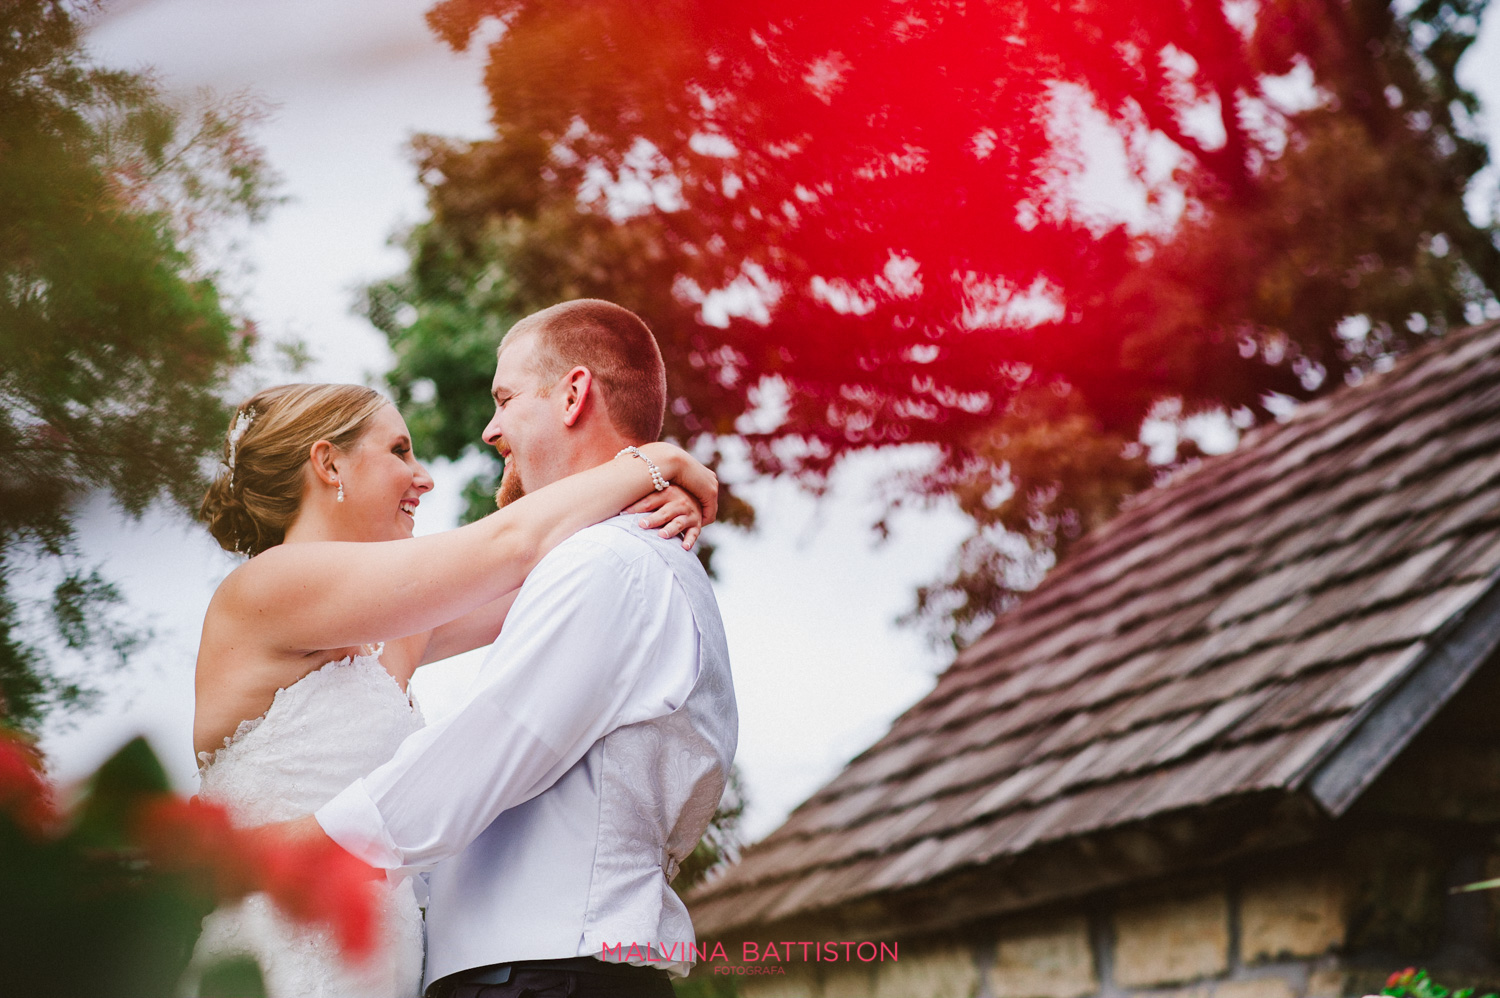 minnesota wedding photographer 023.JPG